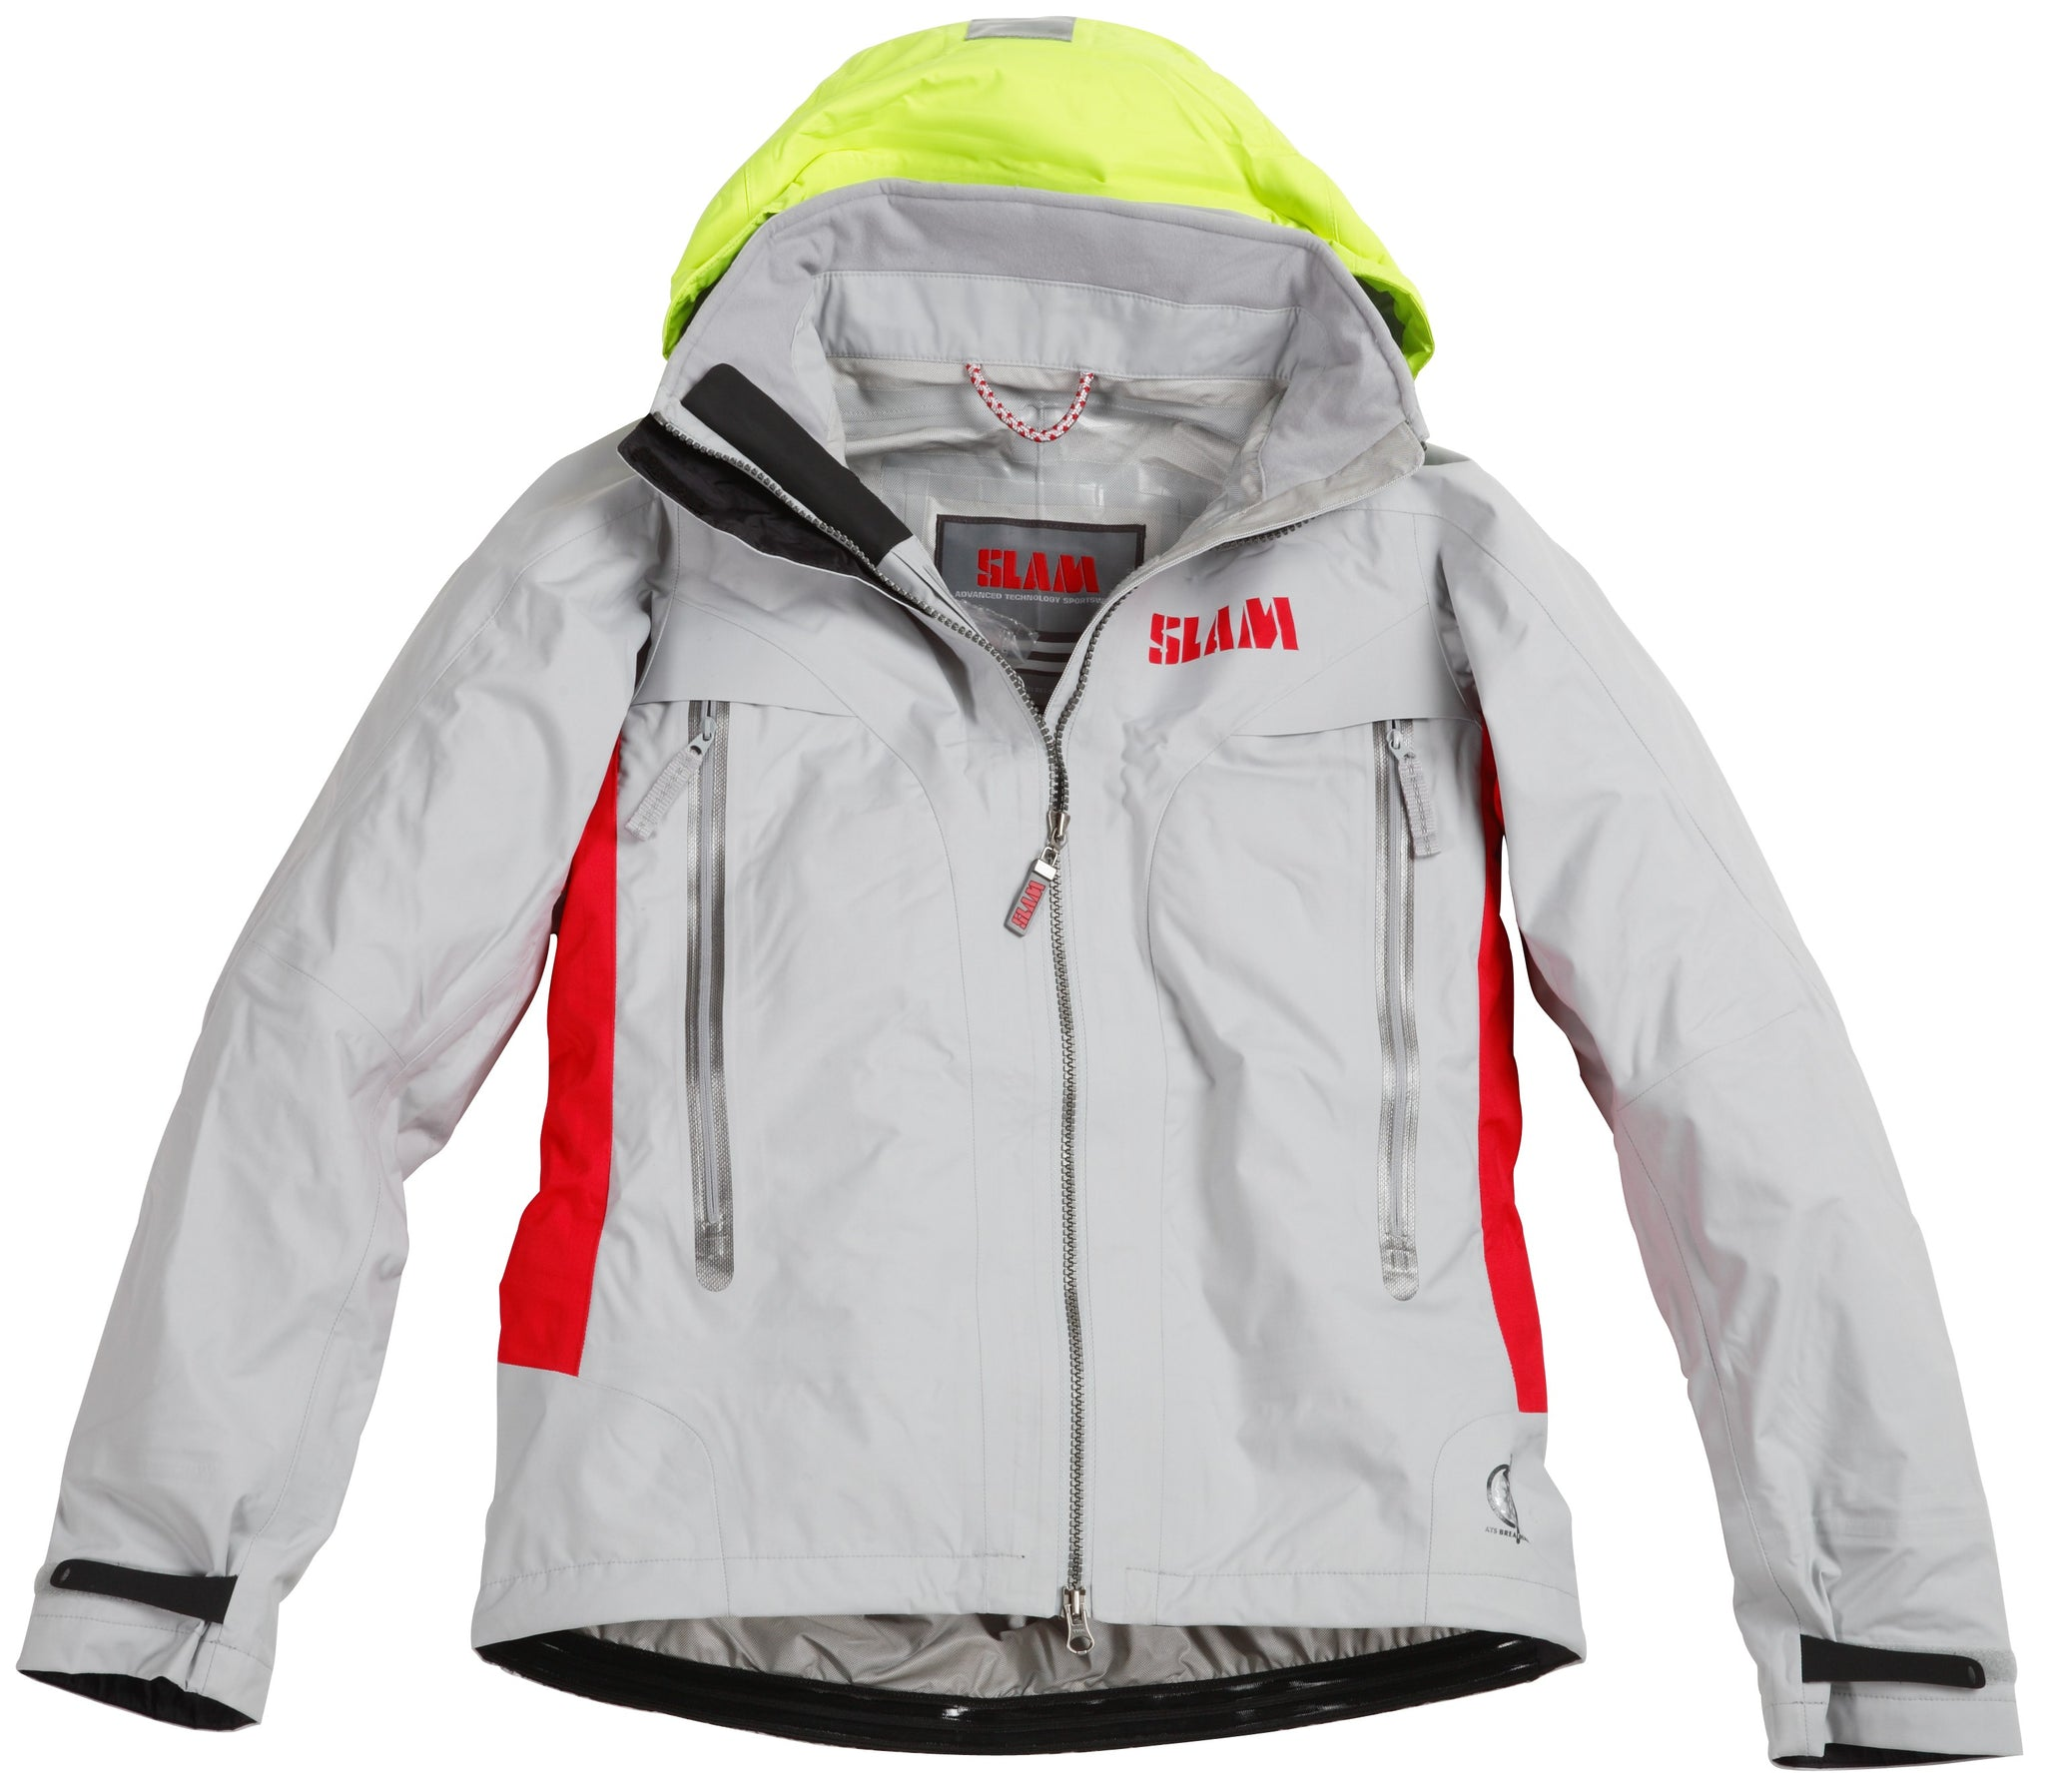 Slam Ladies Evo Jacket